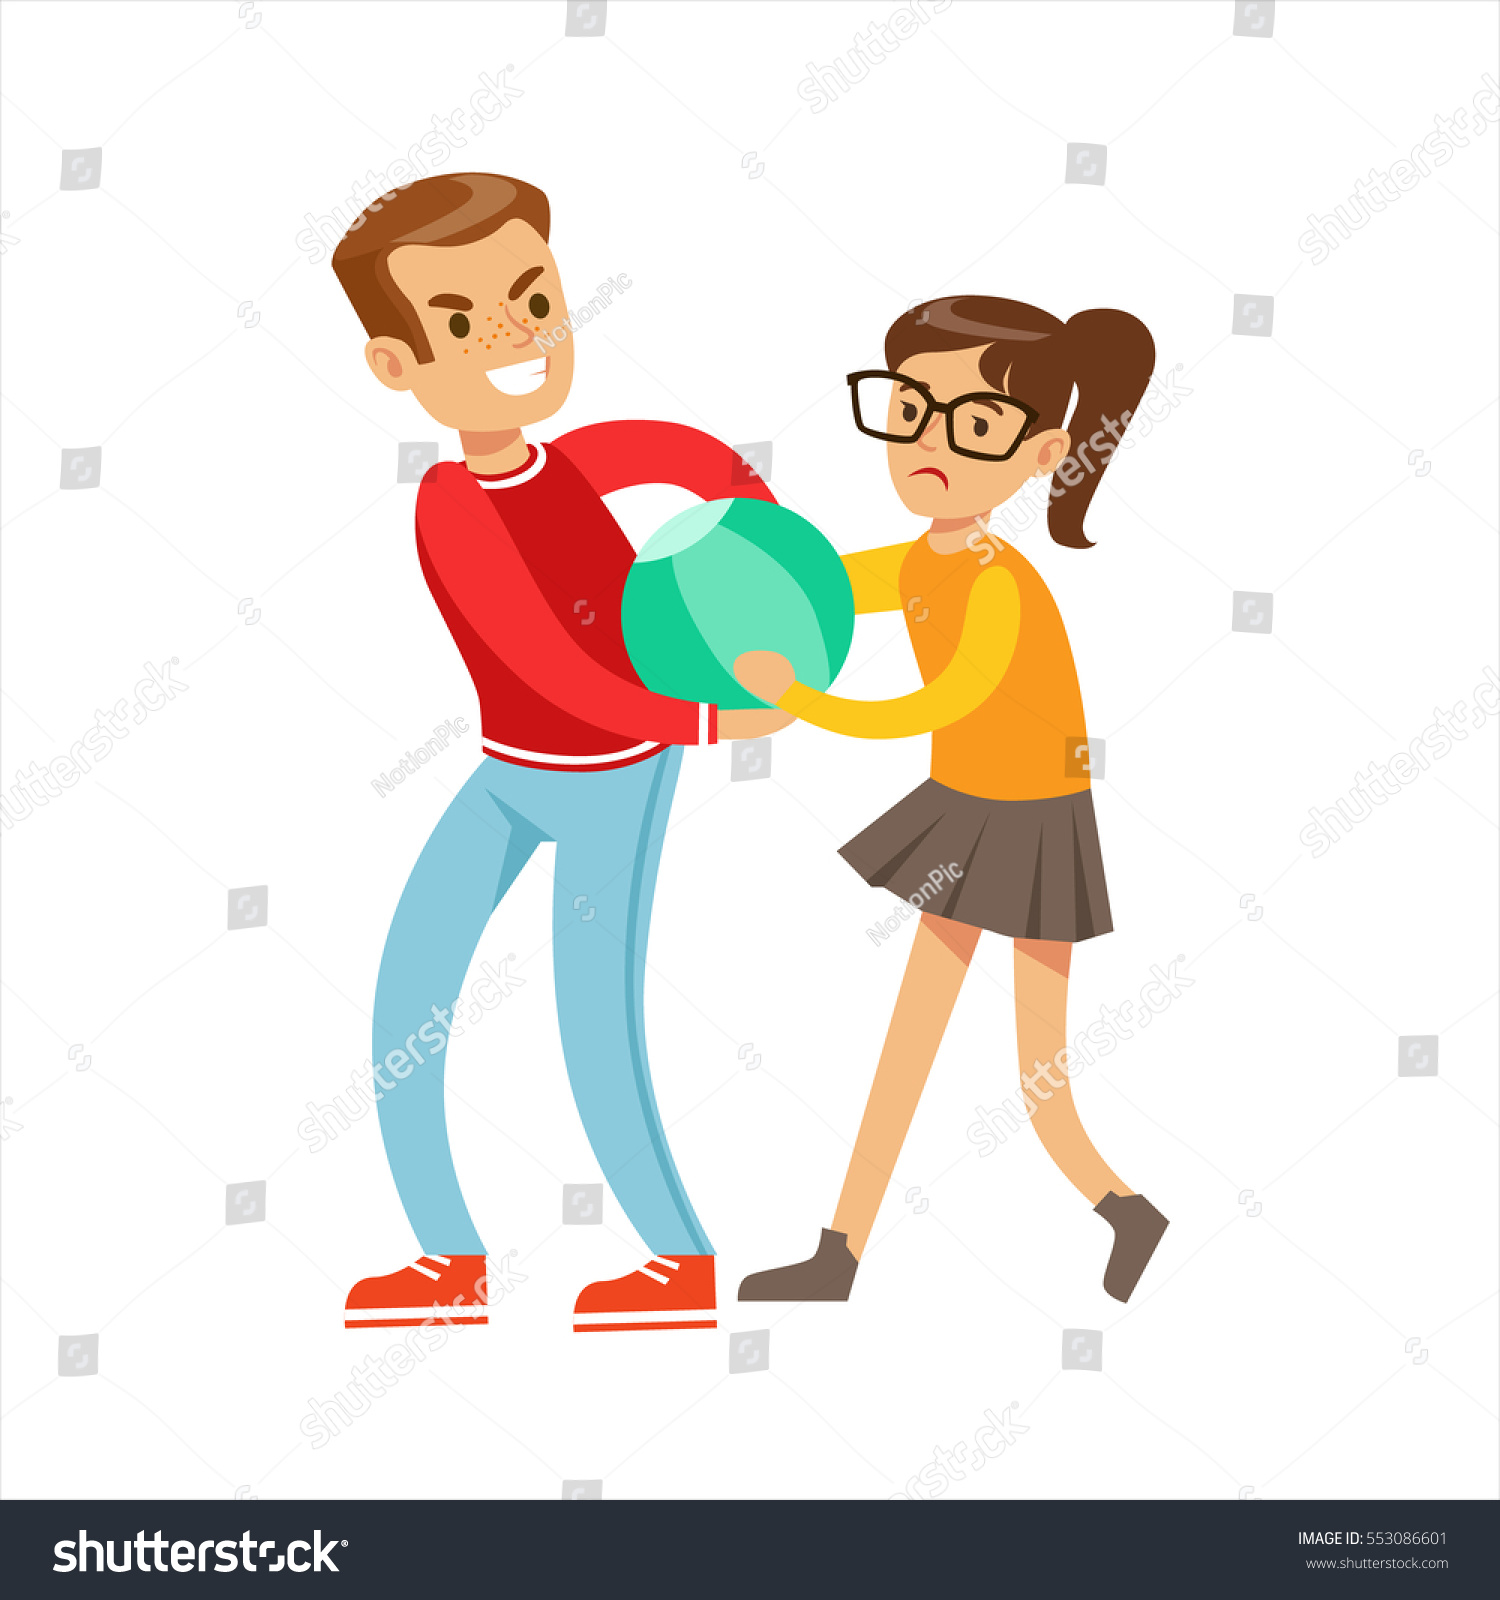 Boy And Girl Fist Fight Positions, Aggressive Bully In Long Sleeve Red Top  Fighting Another